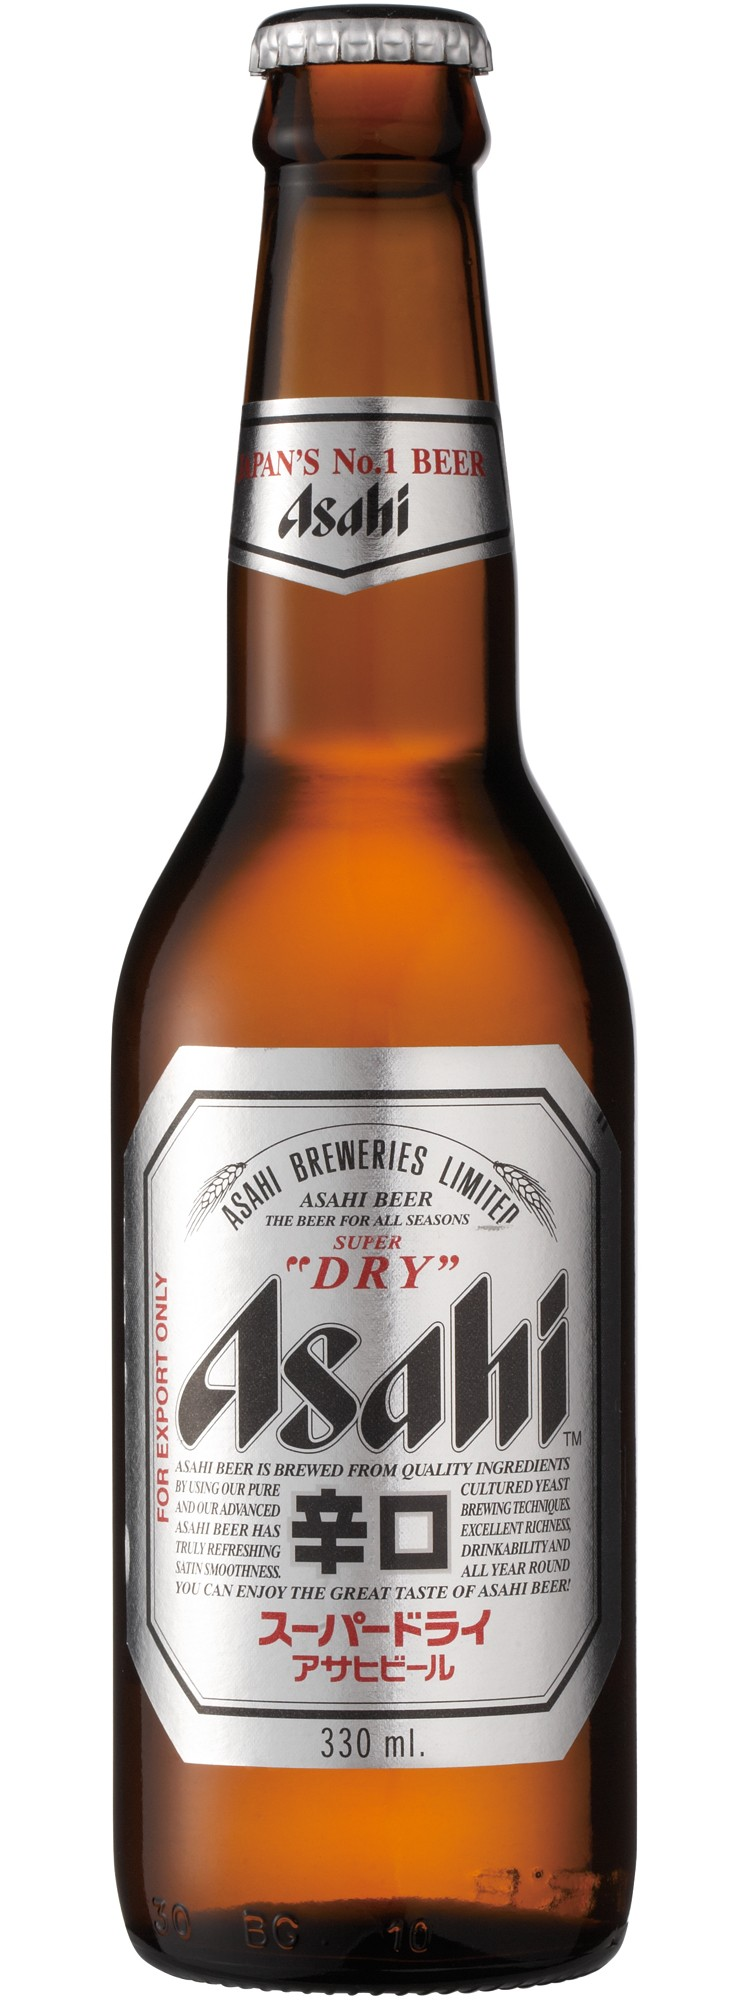 asahi breweries Asahi plans to offer more than 500 billion yen for sabmiller's beer business in five eastern european countries, a report said.